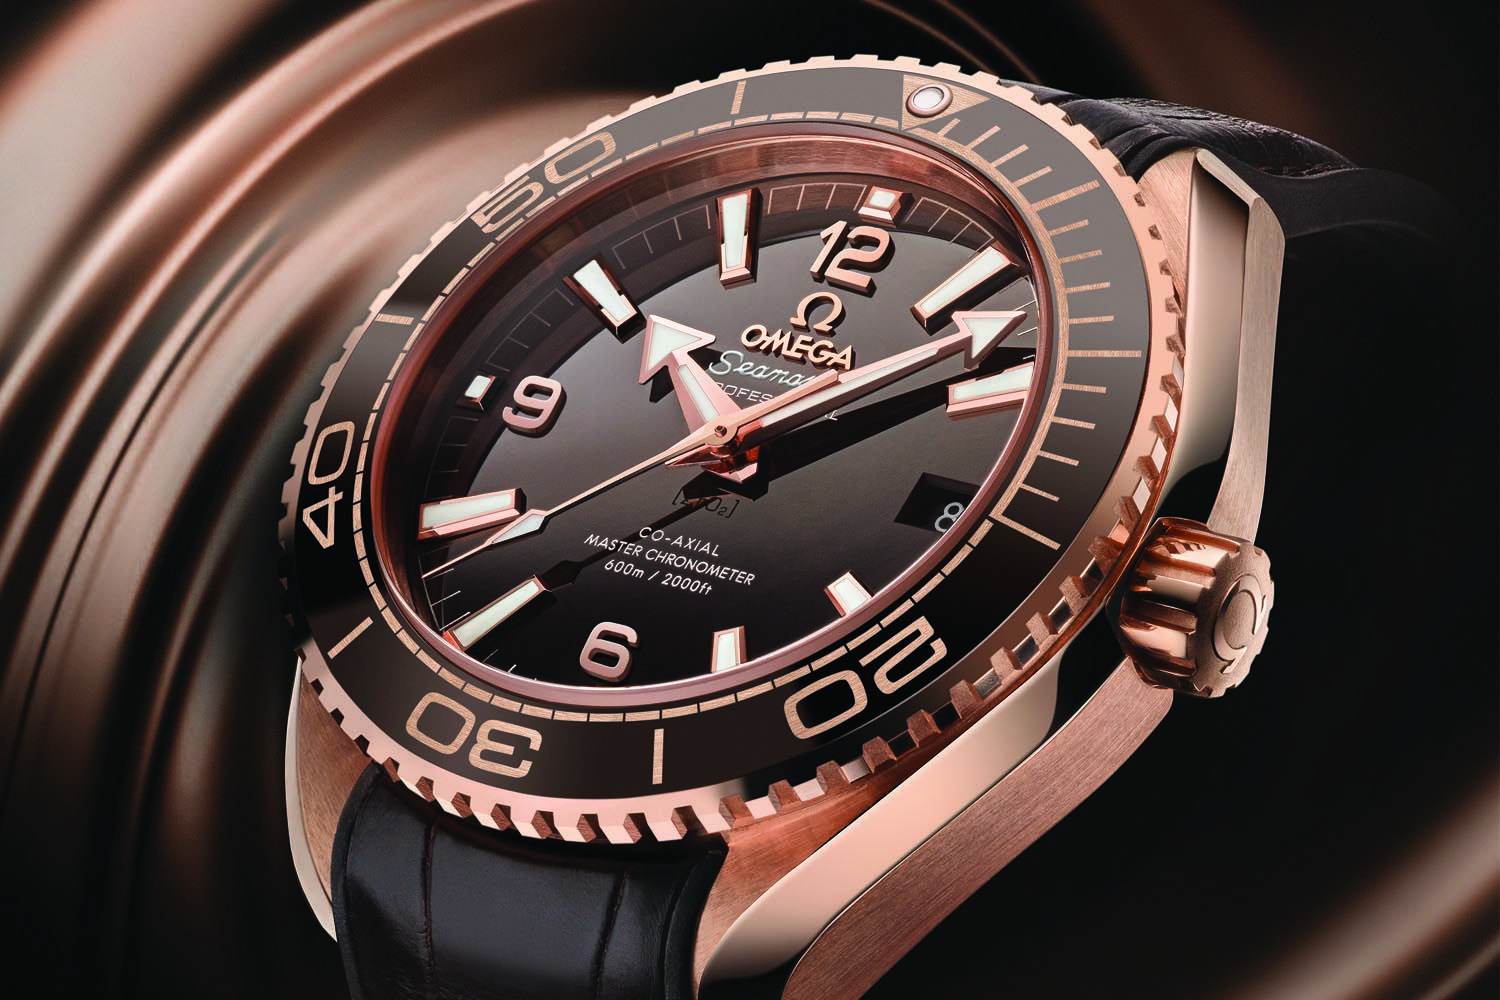 6695d7864d4d Omega Seamaster Planet Ocean 600m Master Chronometer 39.5mm Sedna Gold  brown dial - baselworld 2016 - ref. 215.63.40.20.13.001